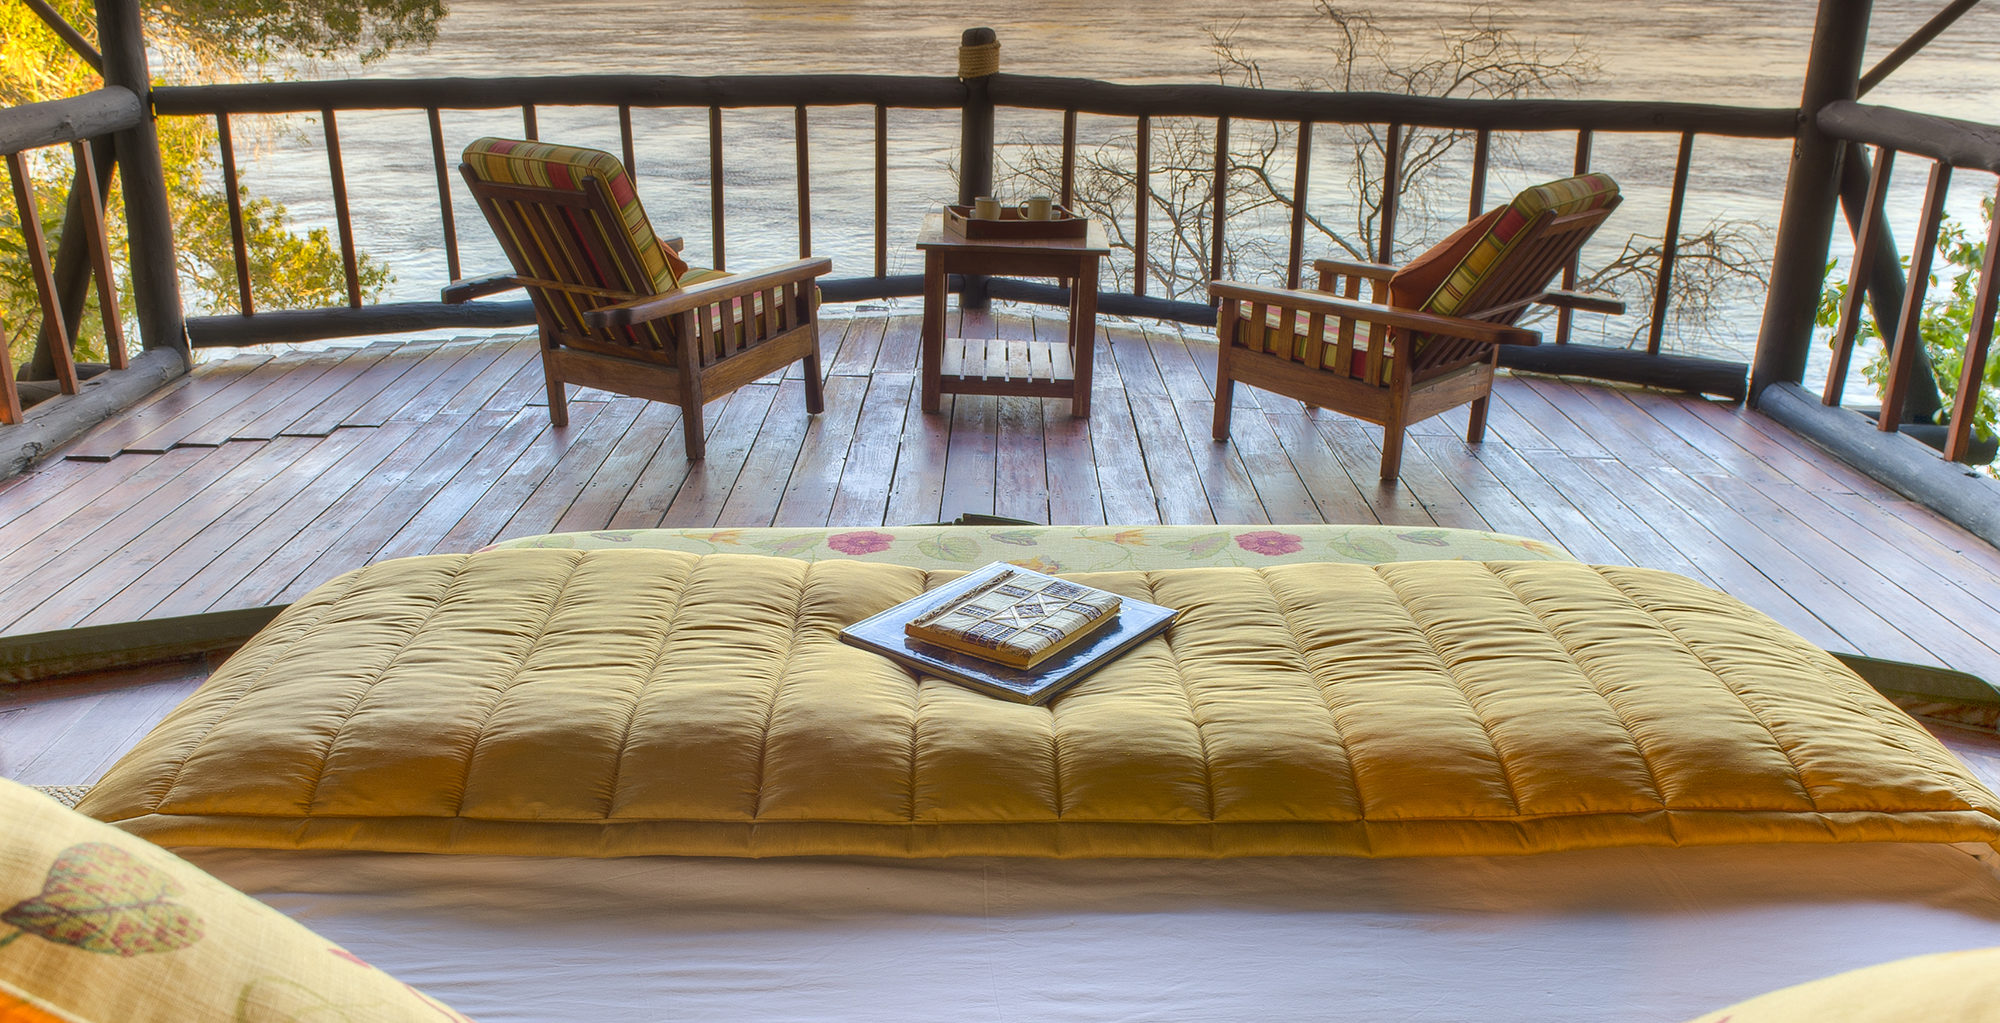 Zambia-Islands-of-Siankaba-Bed-View